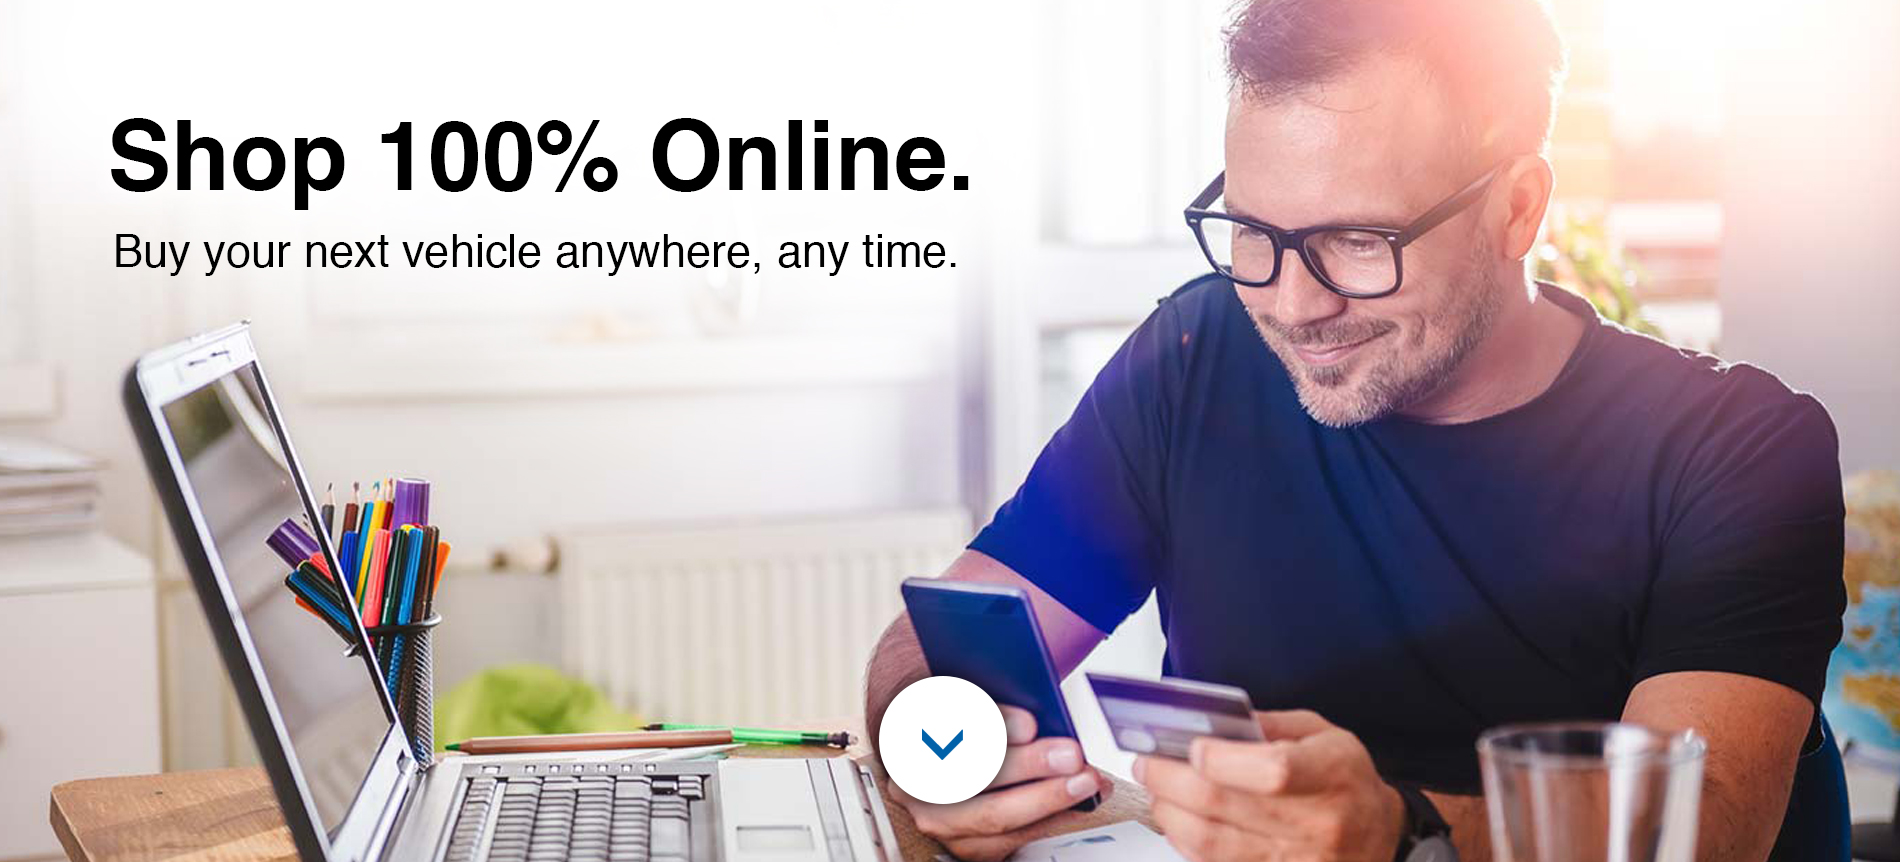 Shop 100% Online. Buy your next vehicle anywhere, any time.